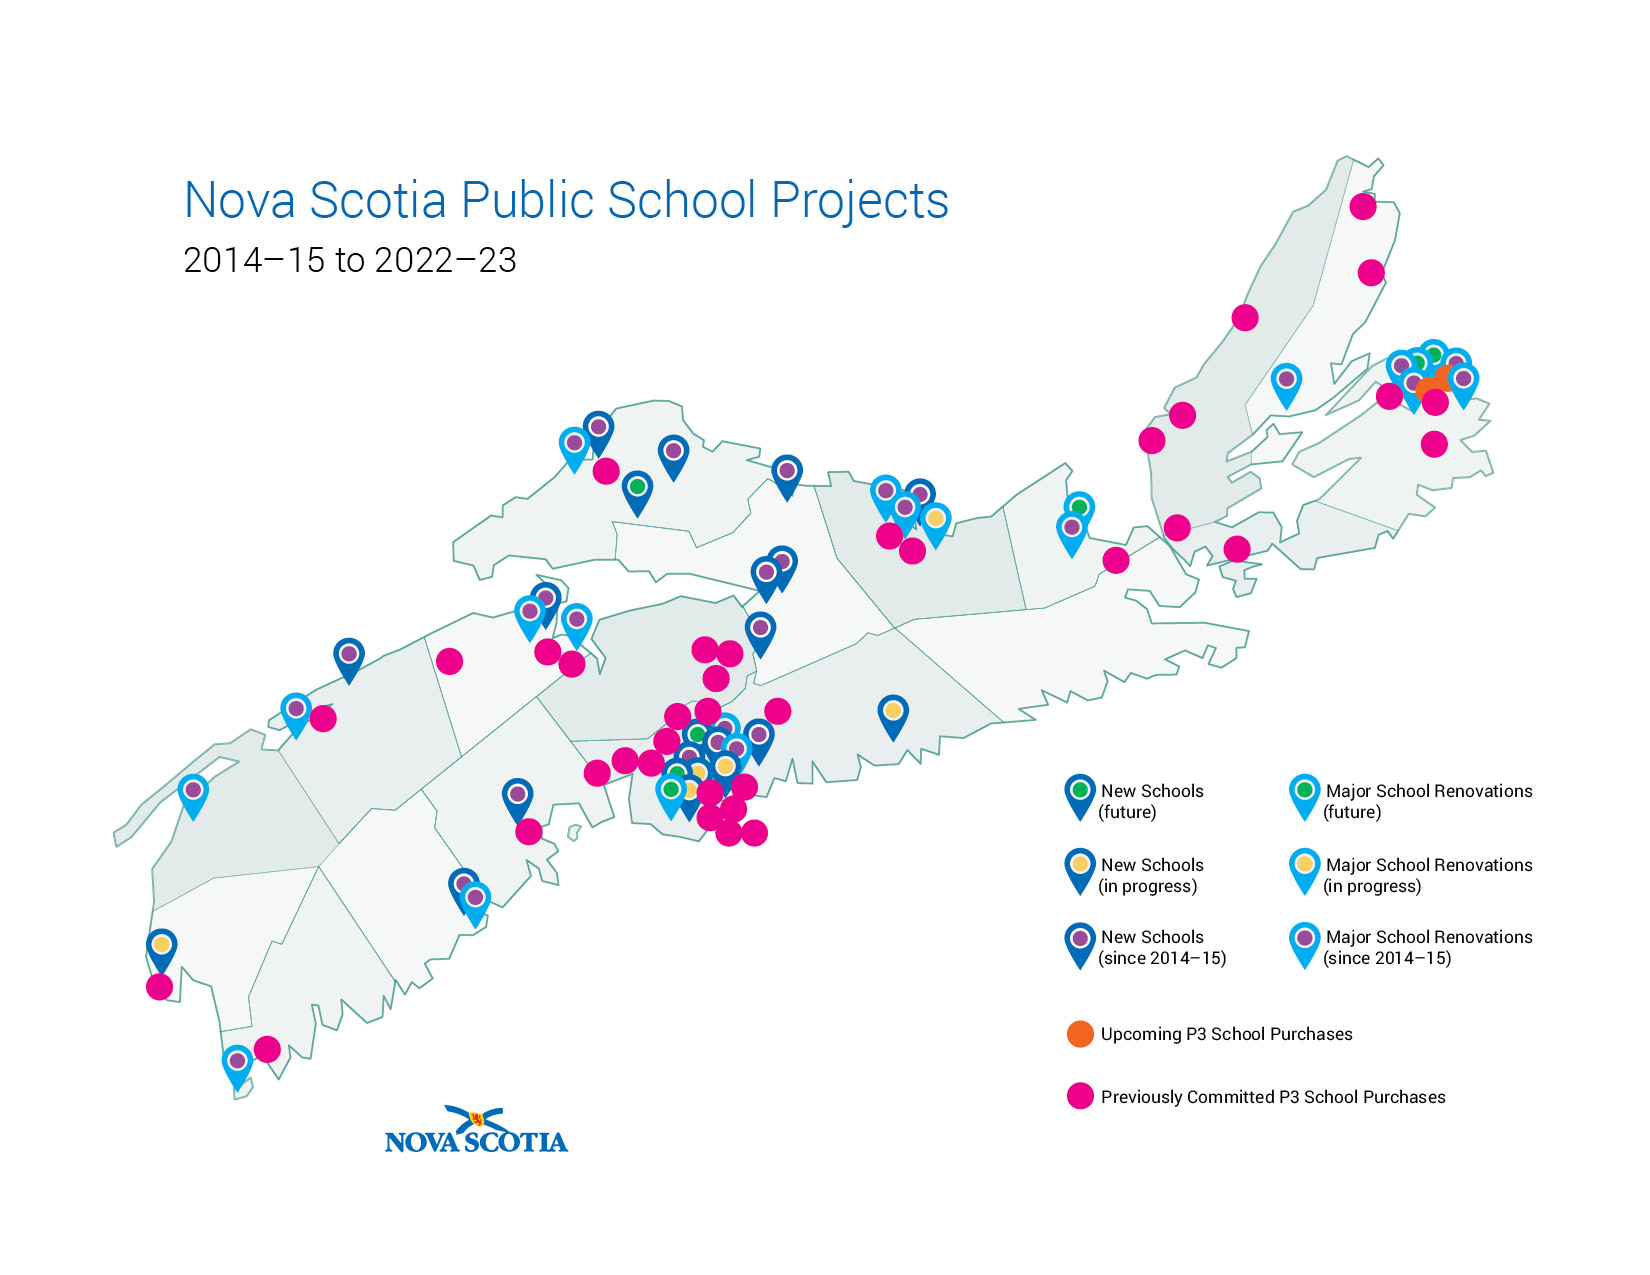 Nova Scotia Public School Projects 2014-15 to 2022-23